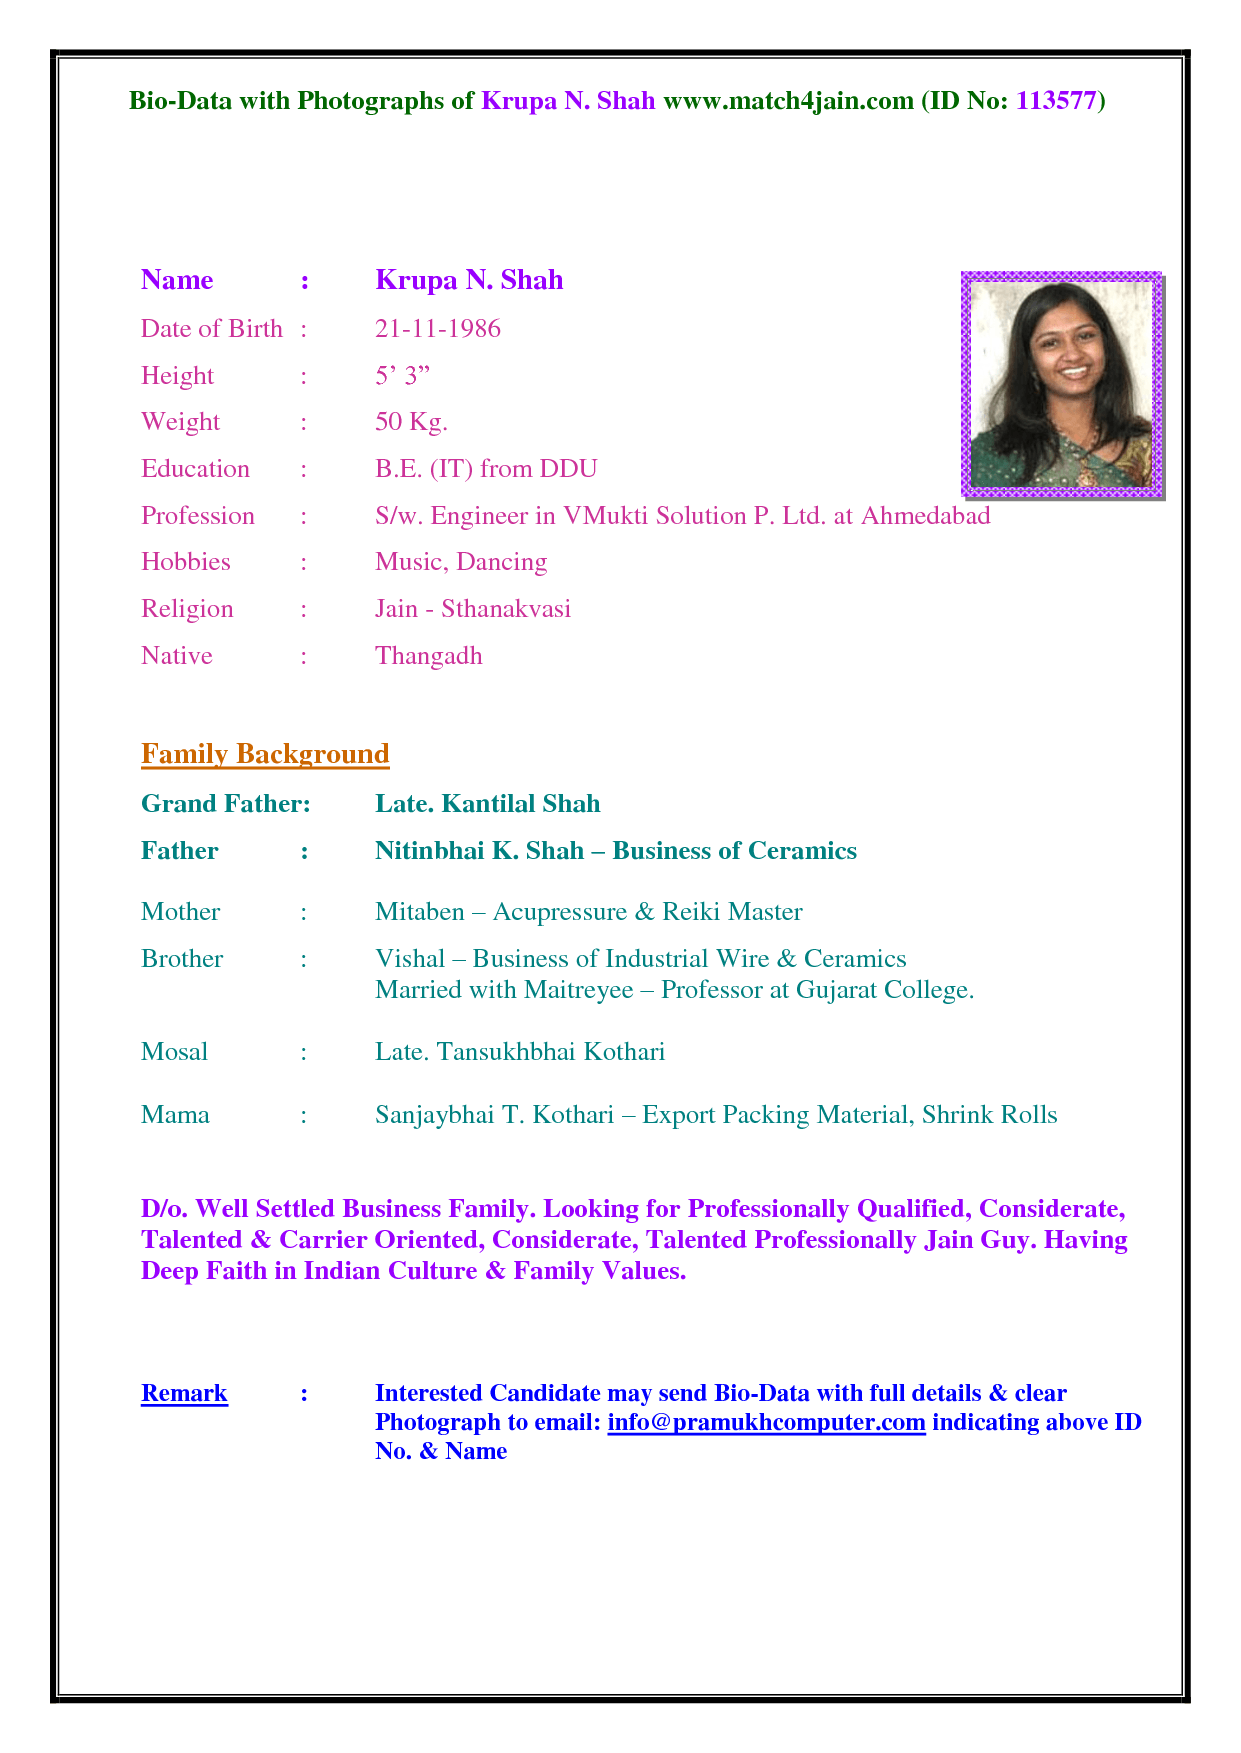 sample marriage biodata format in word easybiodata 1 trusted site for biodata creation marriage biodata doc word formate resume biodata format for marriage - Word Format Of Resume